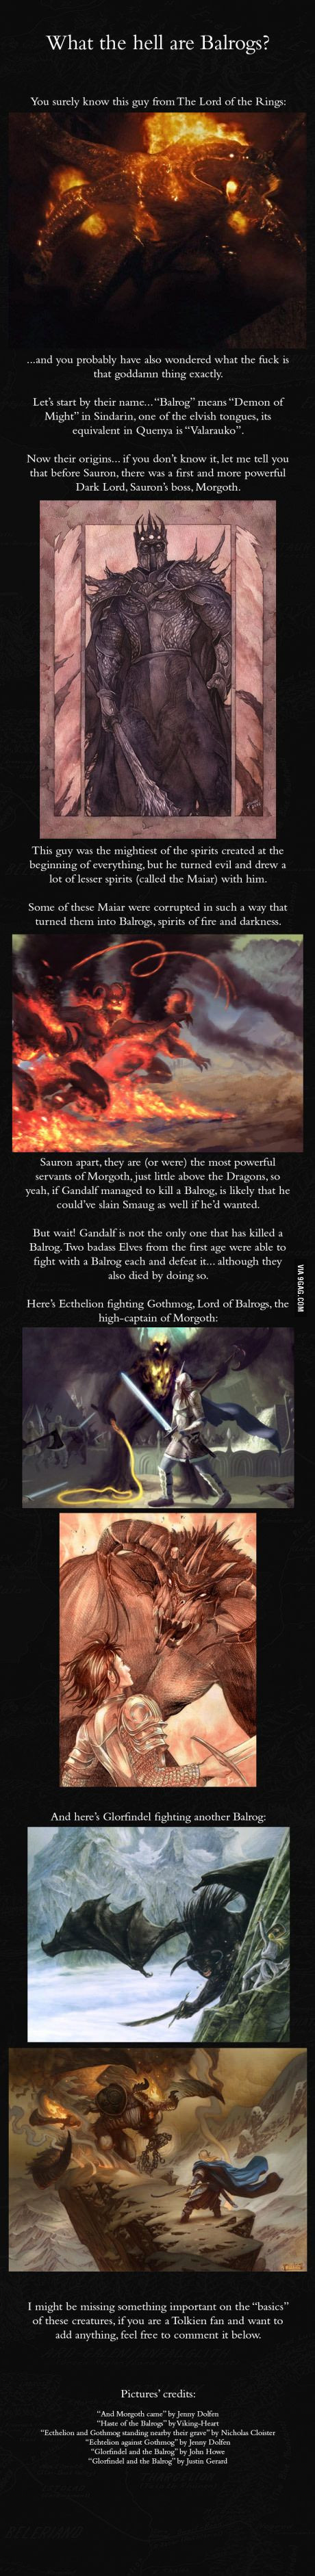 But us that really Glorfindel fighting a balrog? He has brown hair, let's just get one thing straight Glorfindel literally means gold hair.